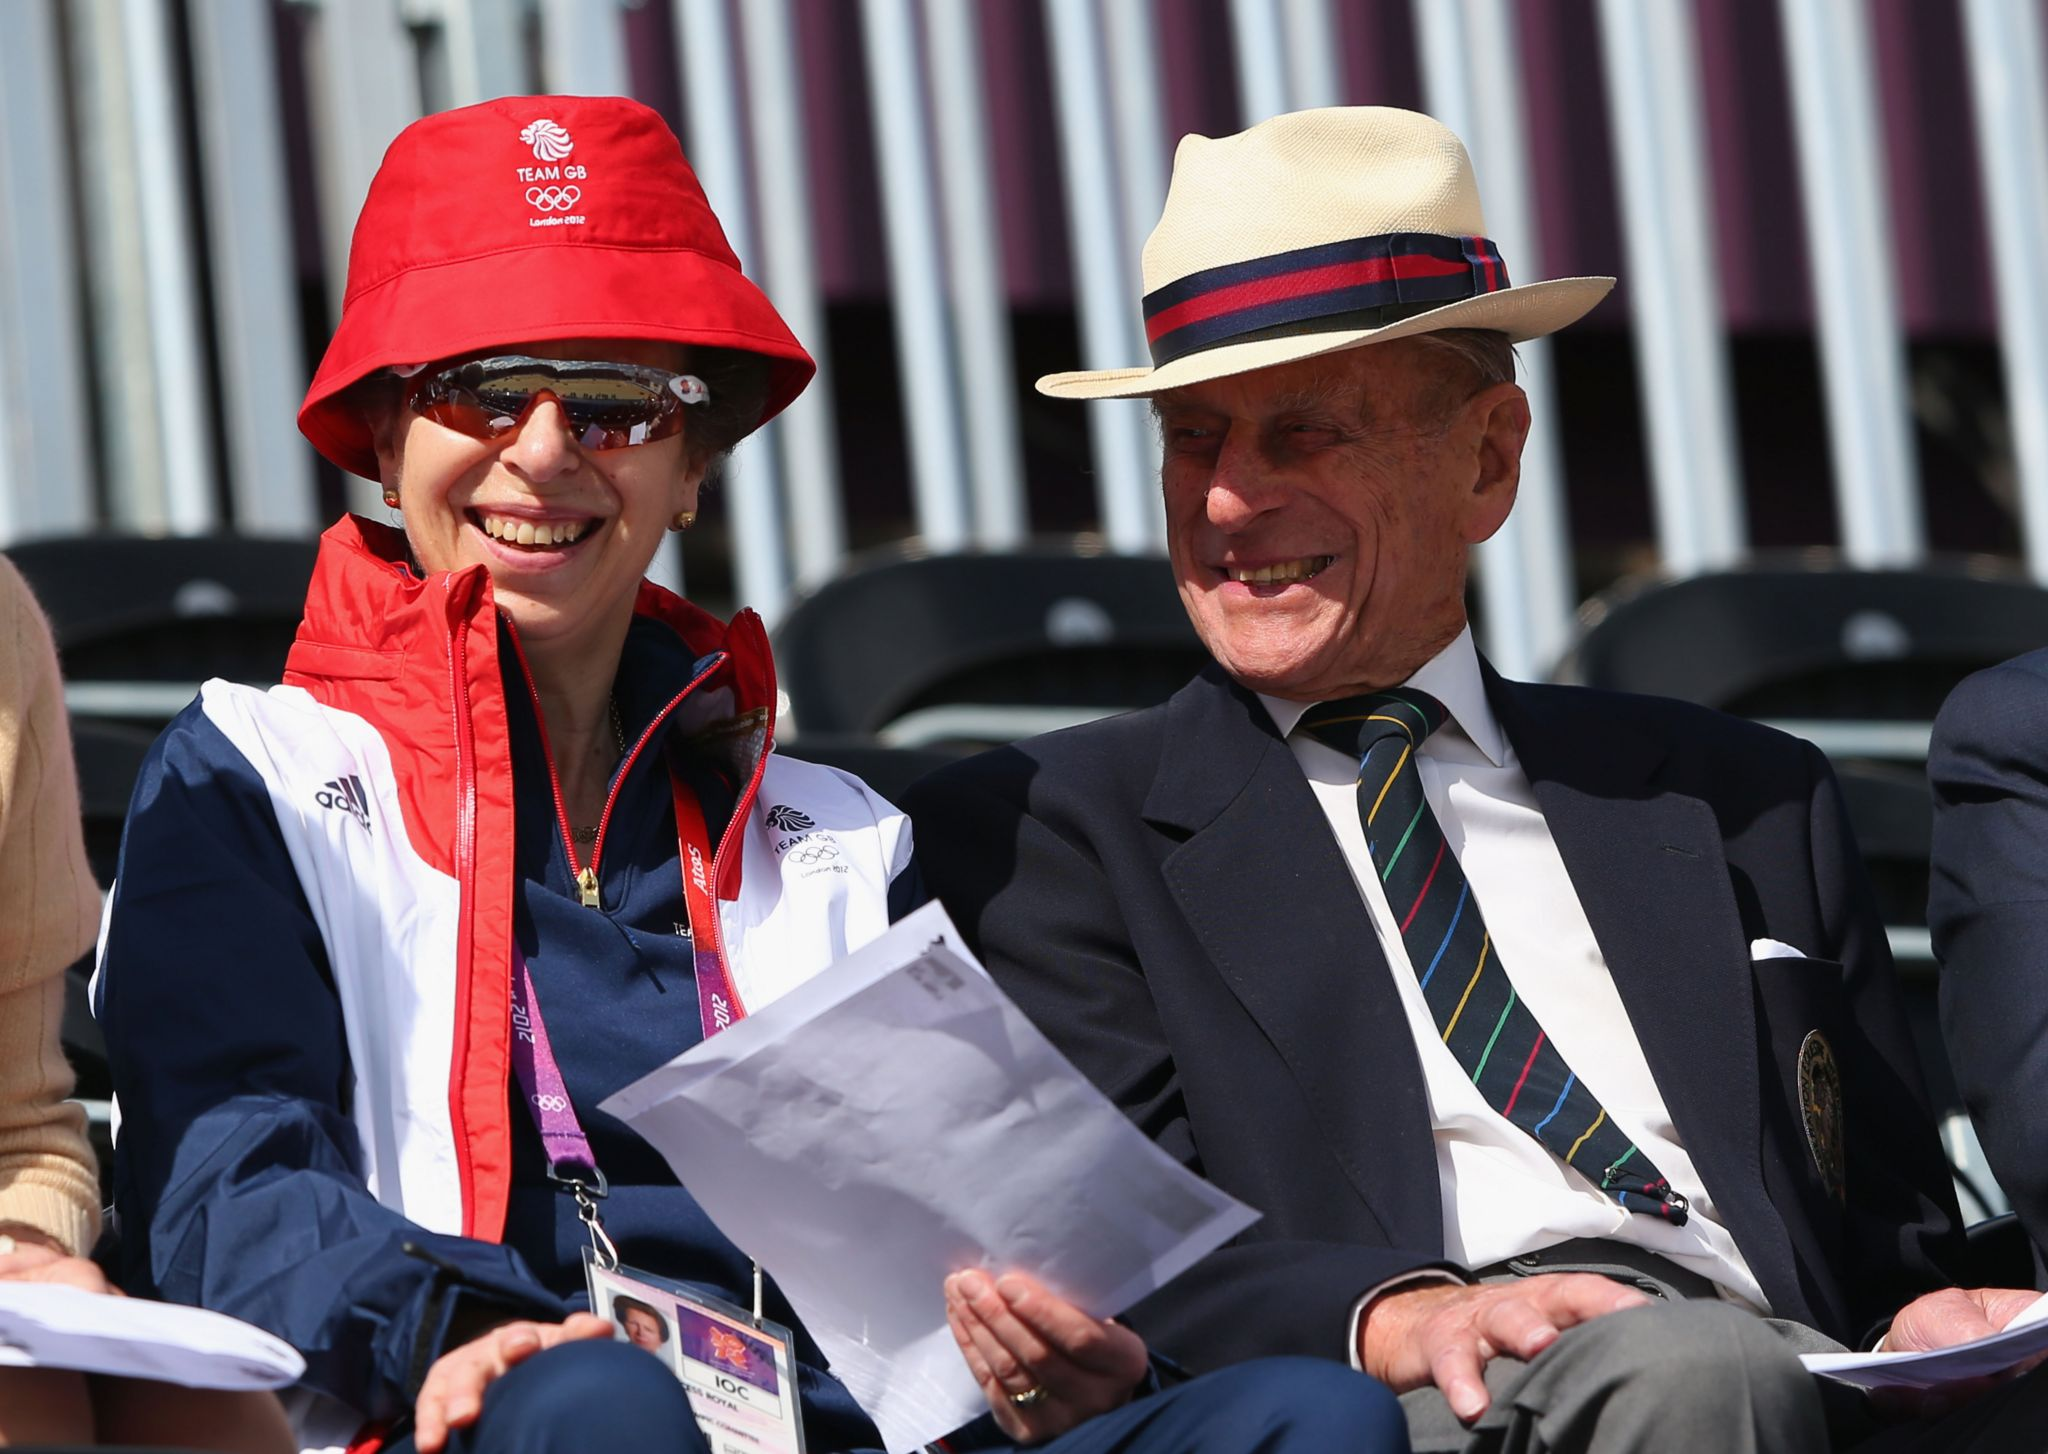 Princess Anne and the Duke of Edinburgh at the London 2012 Olympic Games